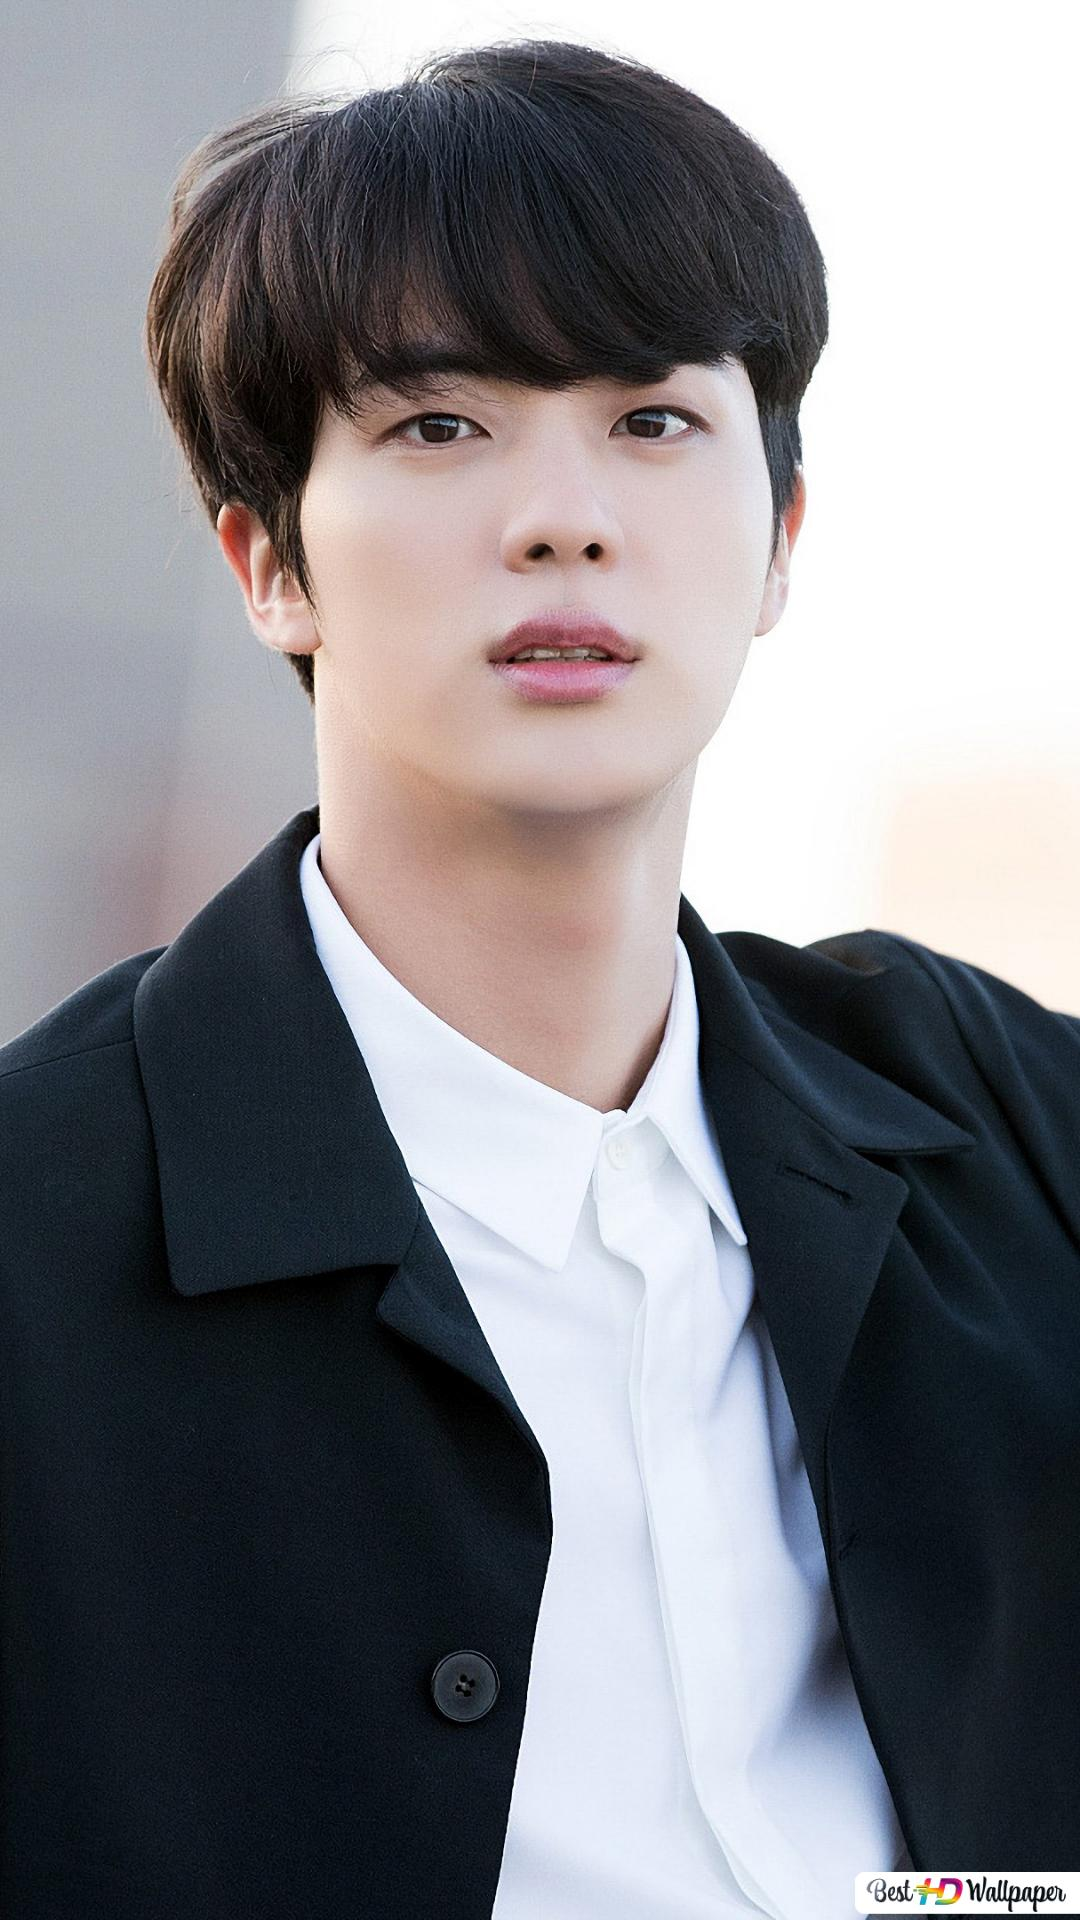 k pop group bts idol jin wallpaper 1080x1920 53649 165